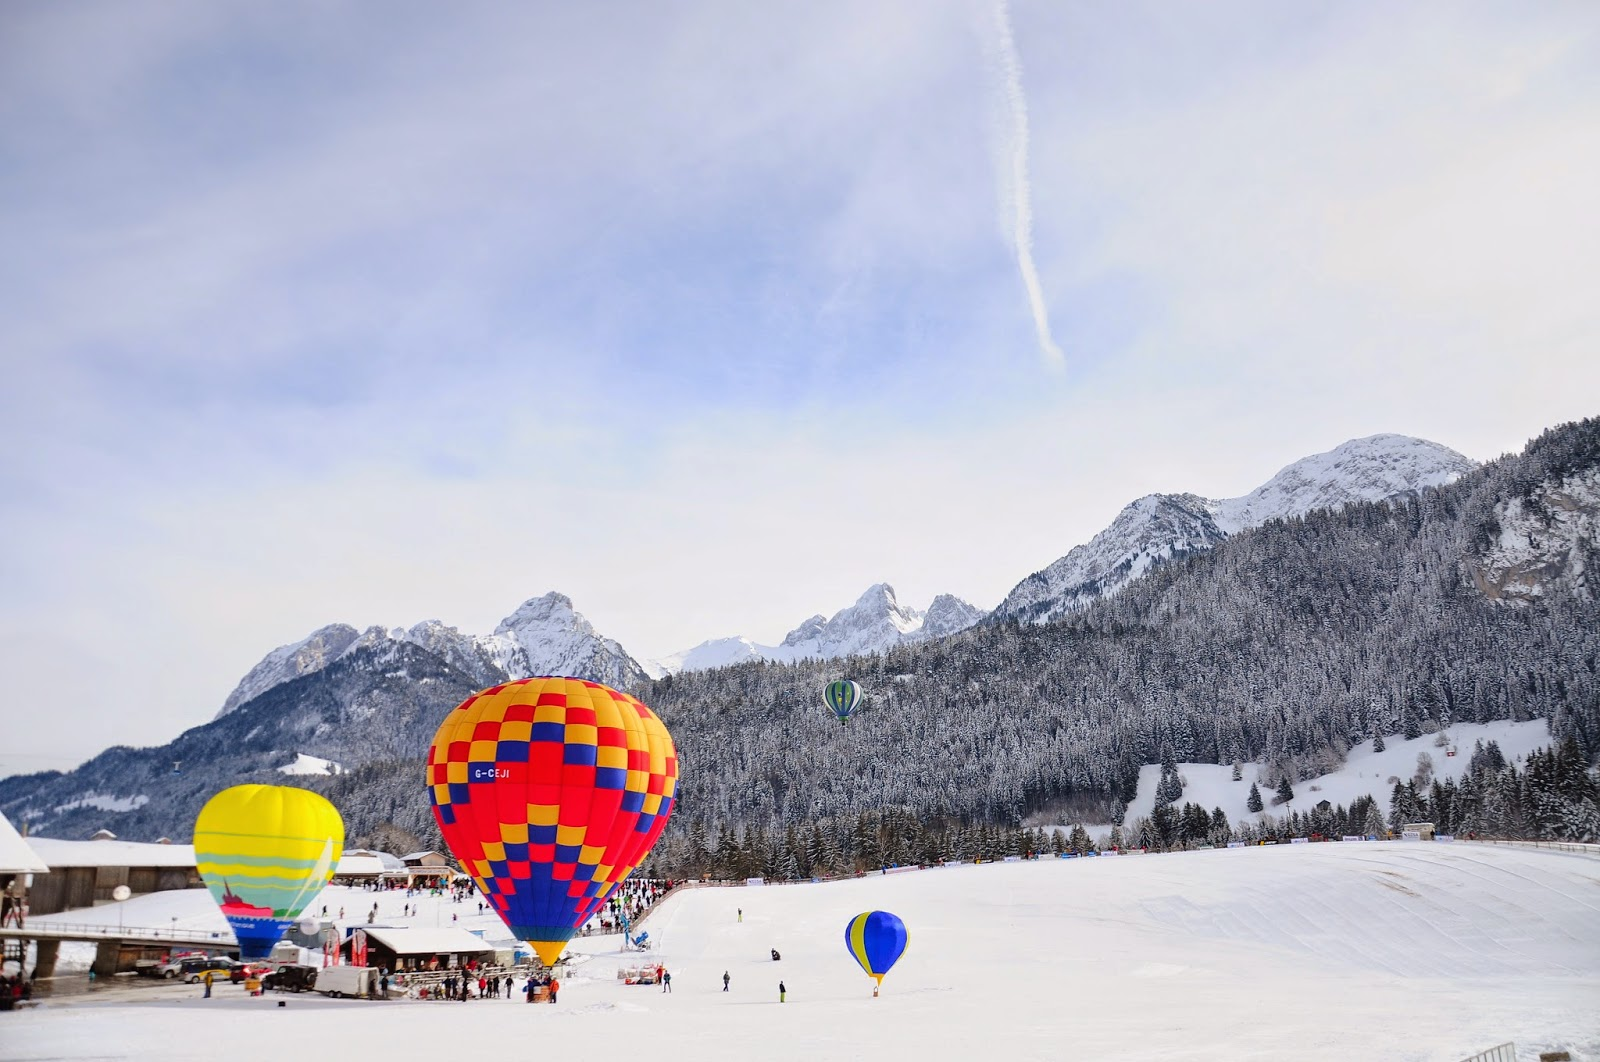 chateau doex festival globos suiza